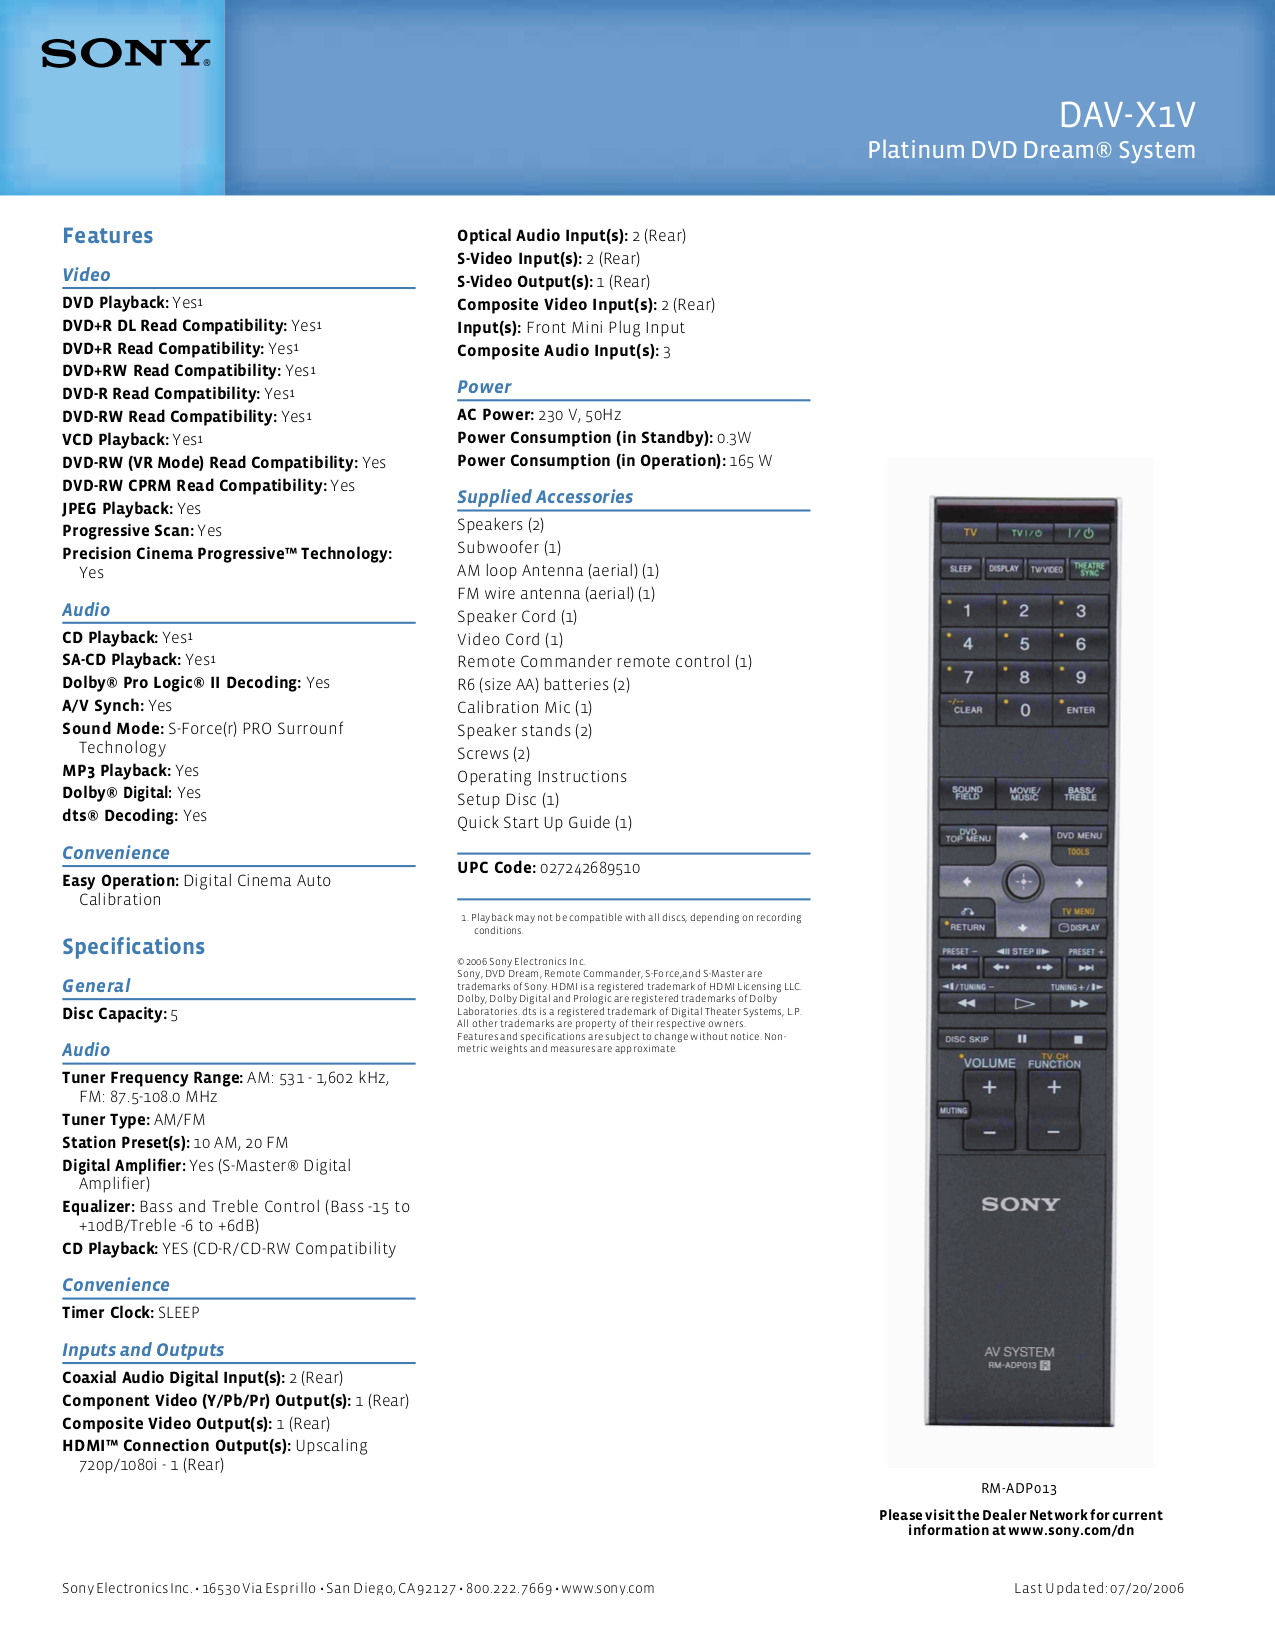 PDF manual for Sony Home Theater DAV-X1V